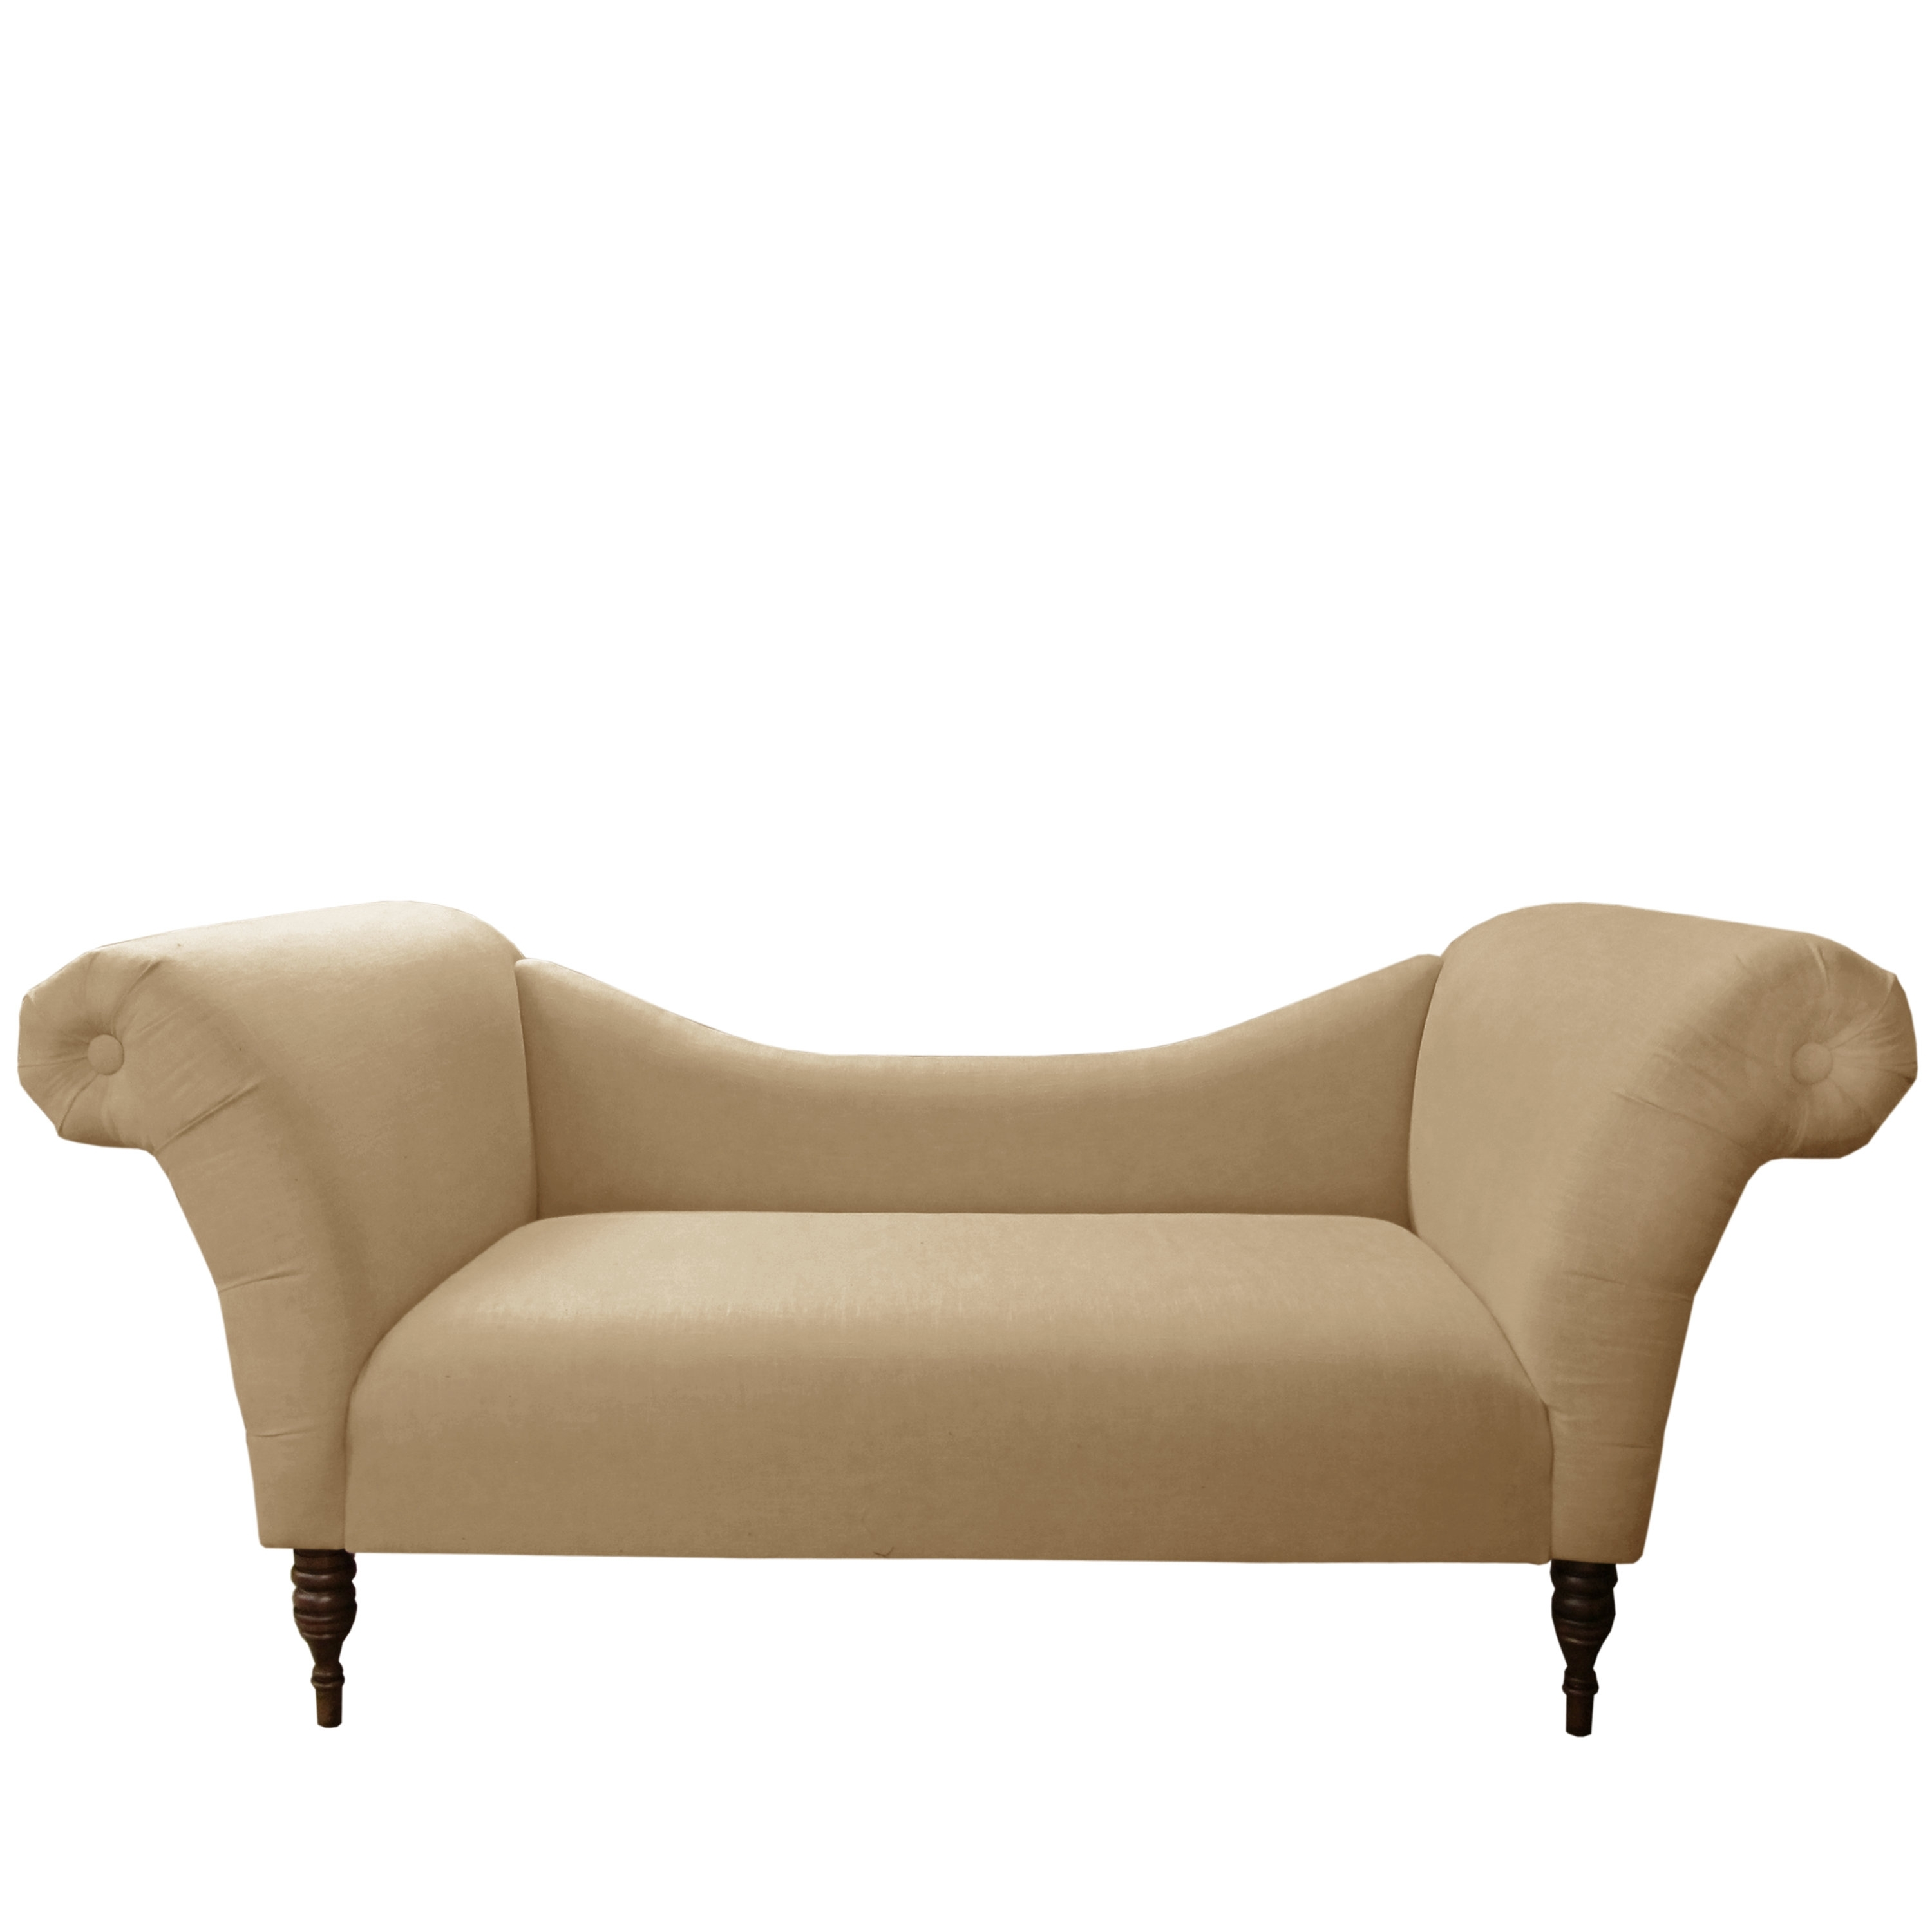 Latest Linen Chaise Lounges For House Of Hampton Linen Chaise Lounge & Reviews (View 11 of 15)